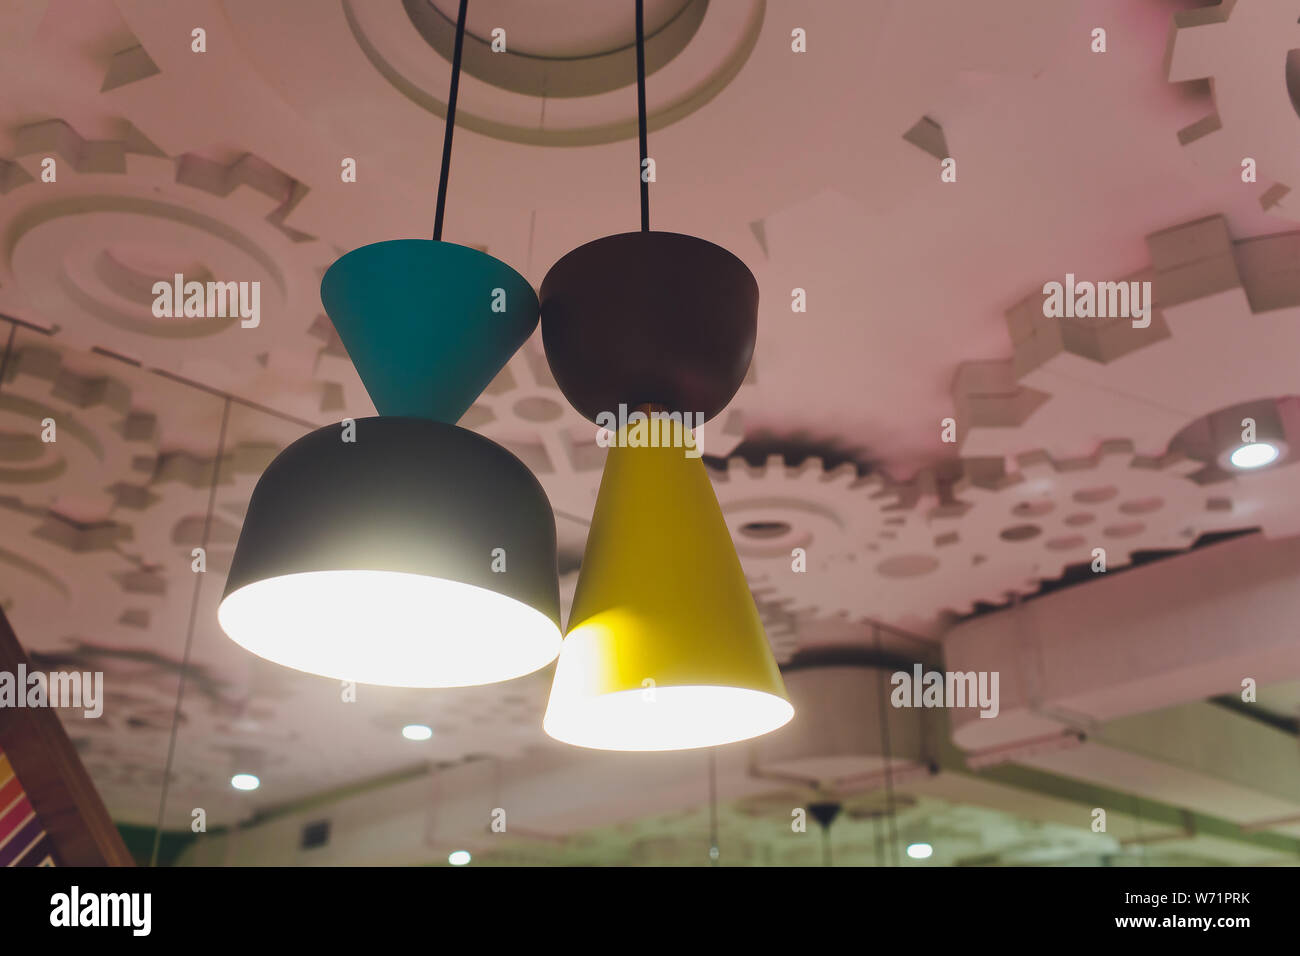 Modern Lamps Led Modern Chandelier With Led Lamps Hanging On The Ceiling In